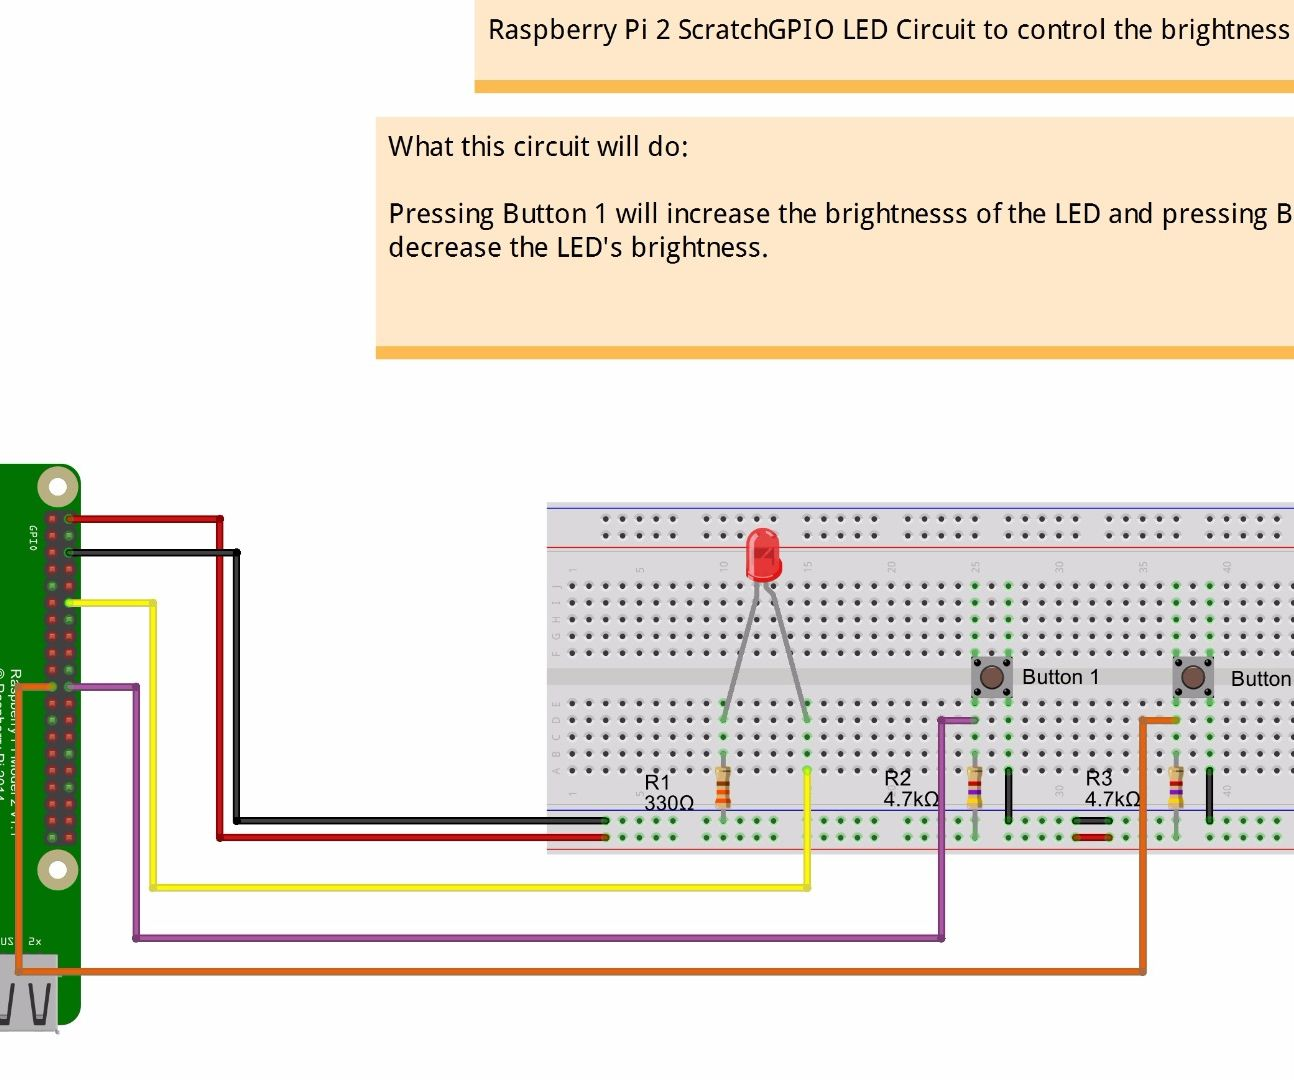 Brightness Control Pwm Based Led Using Push Buttons Wiringpi Set Clock Raspberry Pi And Scratch 8 Steps With Pictures